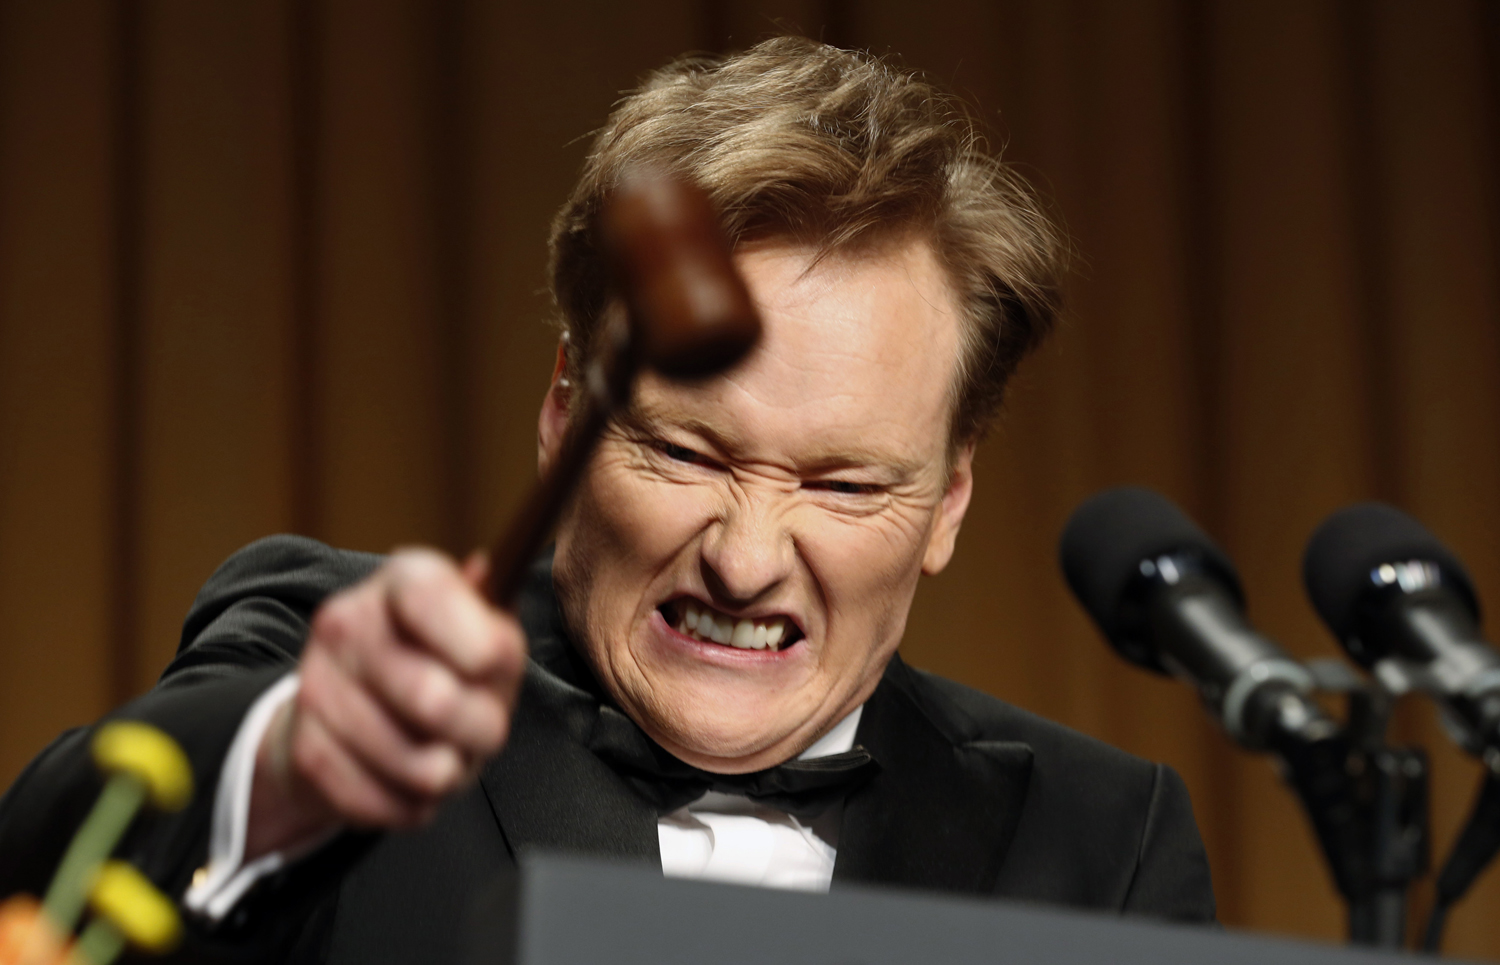 Comedian Conan O'Brien smashes a gavel as he speaks during the White House Correspondents Association Dinner in Washington April 27, 2013